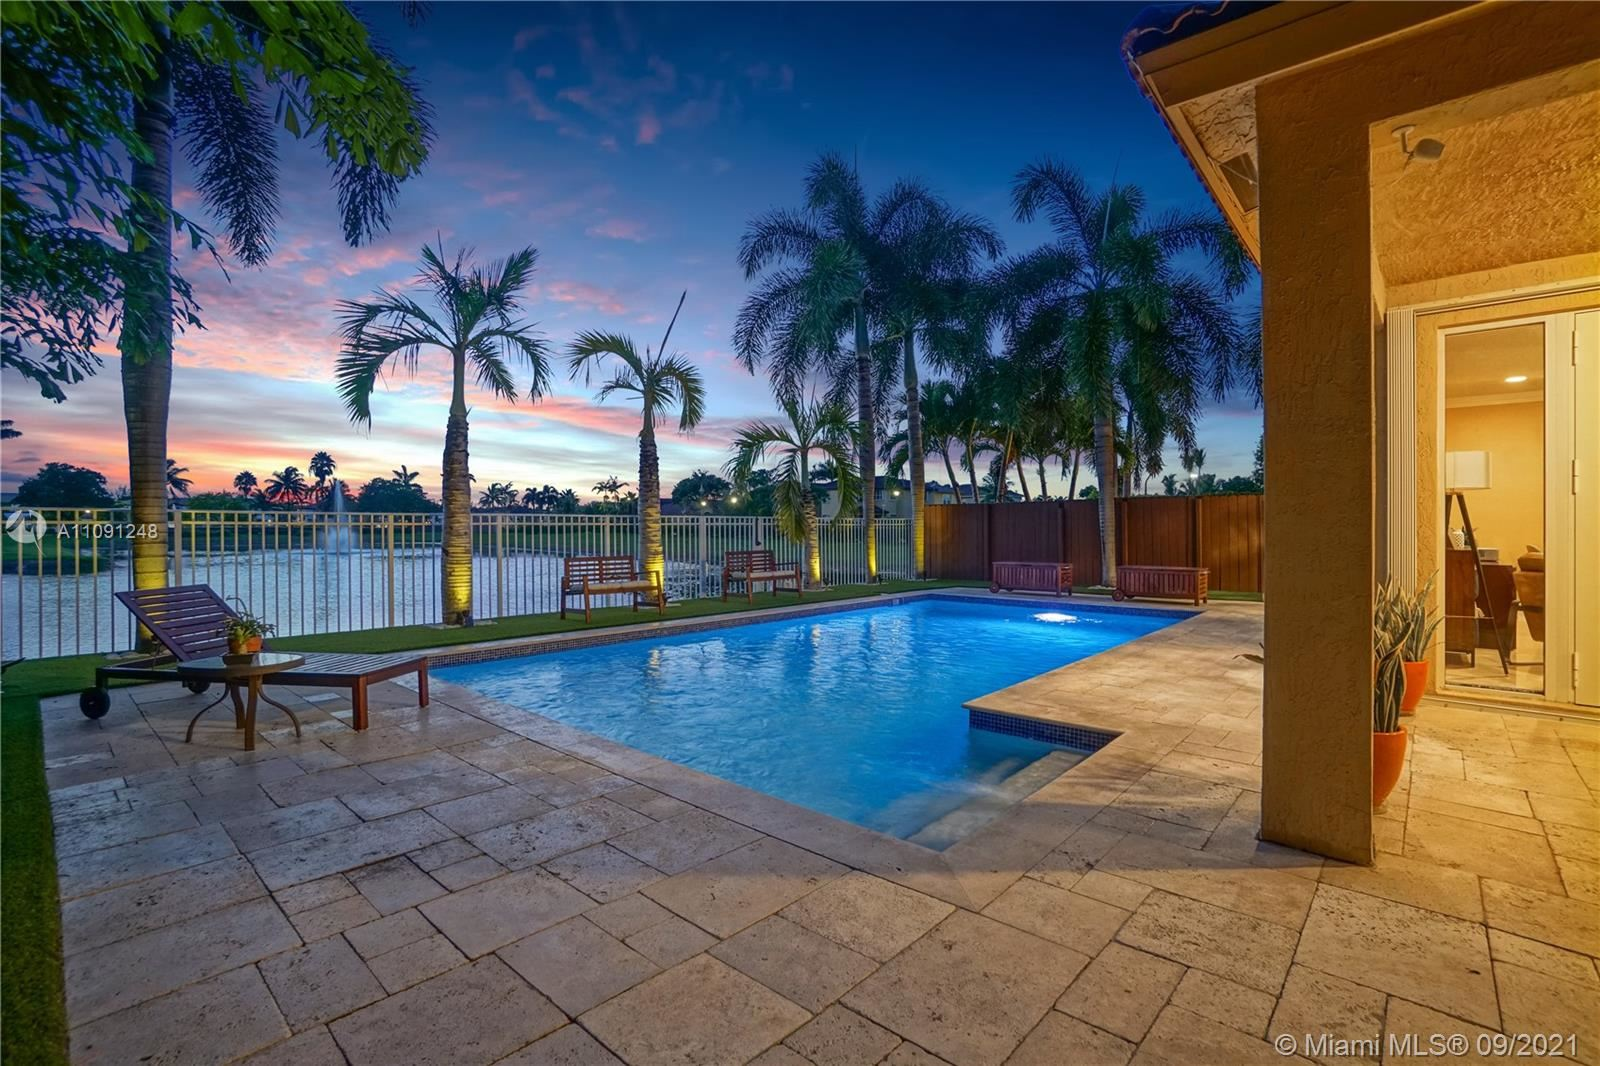 7756 NW 113th Ave, Doral, FL 33178 - #: A11091248